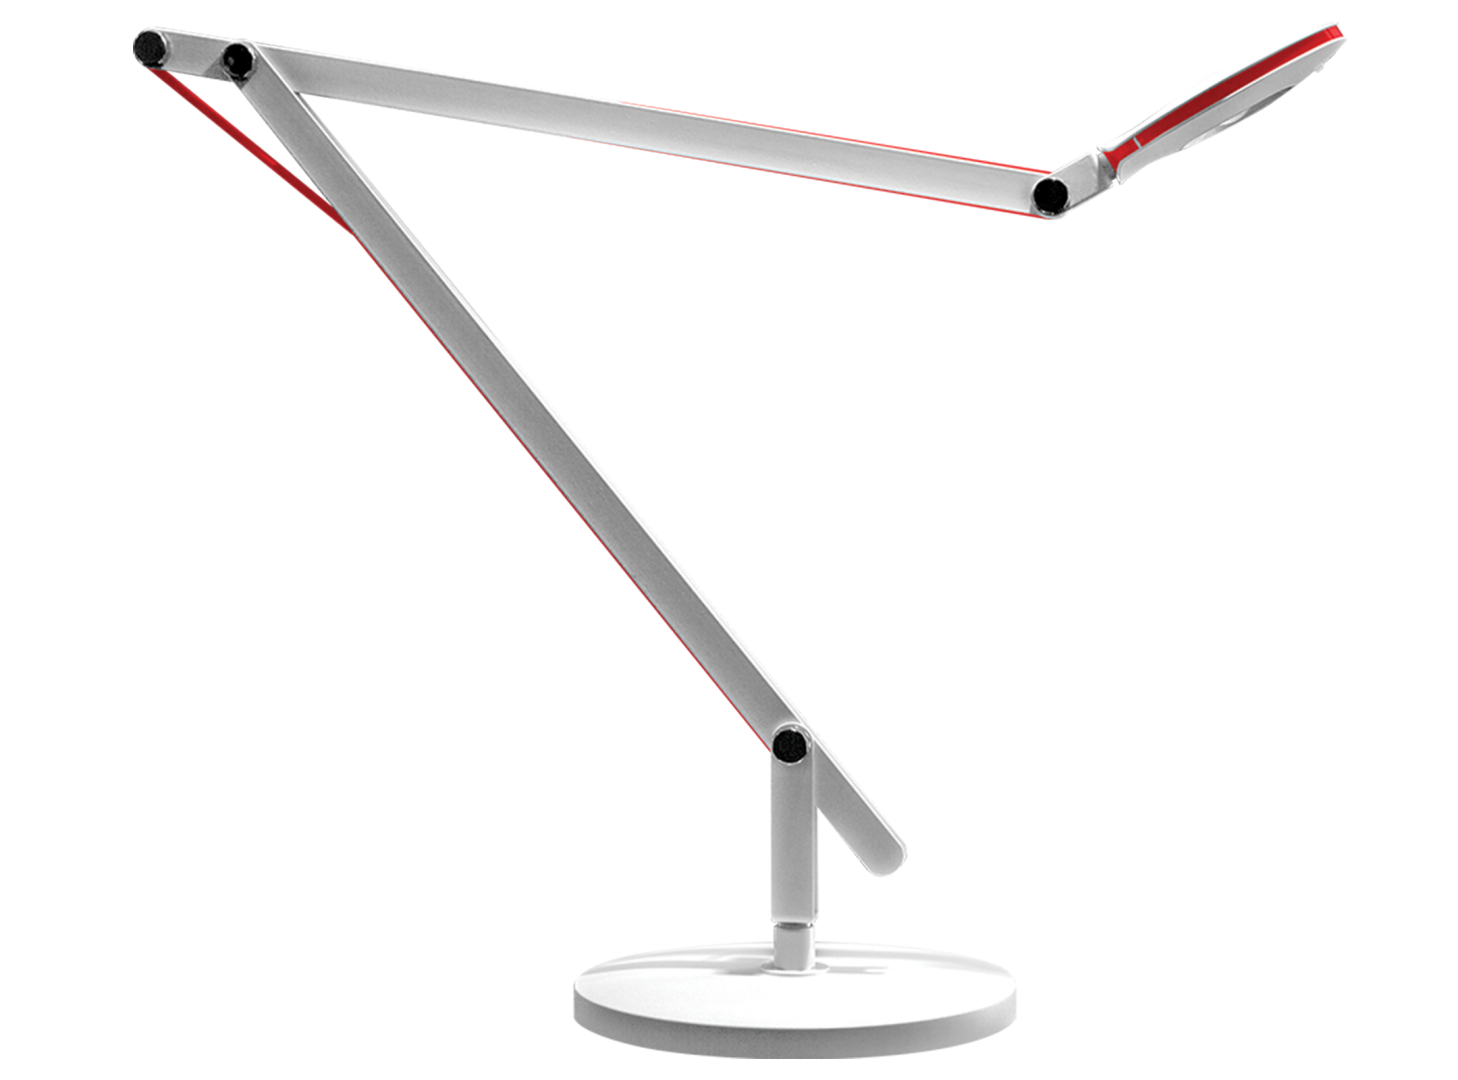 Kumi LED desk lamp